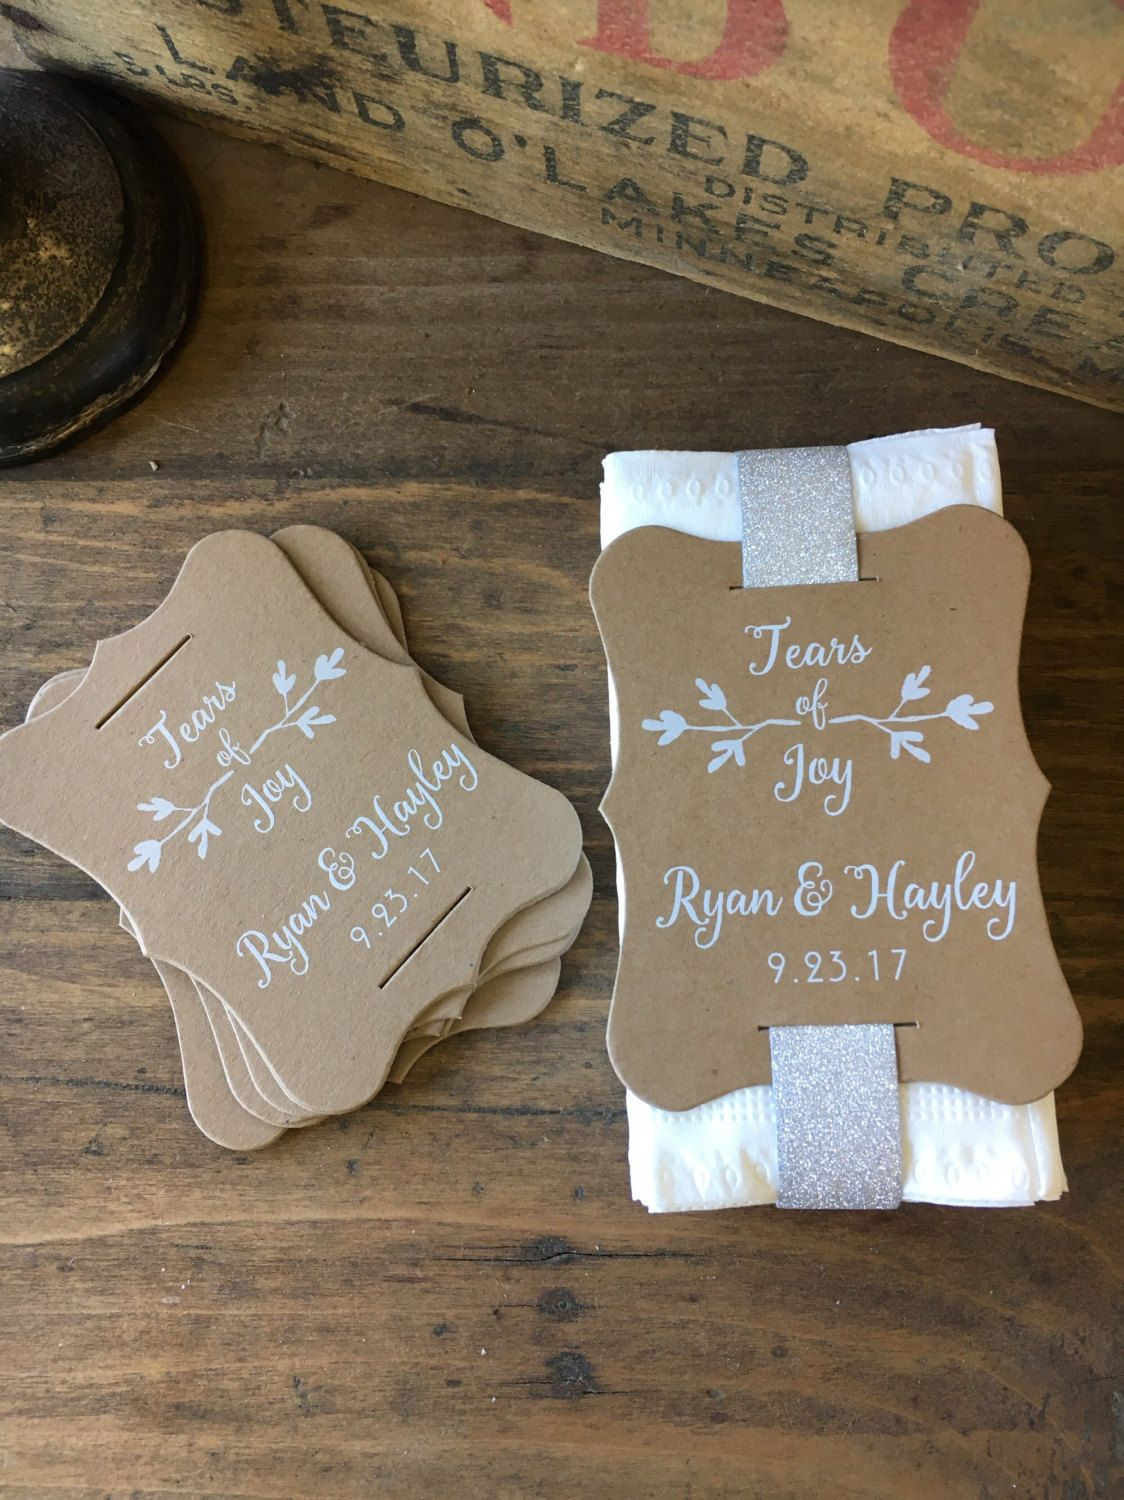 Tears Of Joy Wedding Tissue Tags Unique Custom Favors Personalized Ceremony Pack Label Set 24